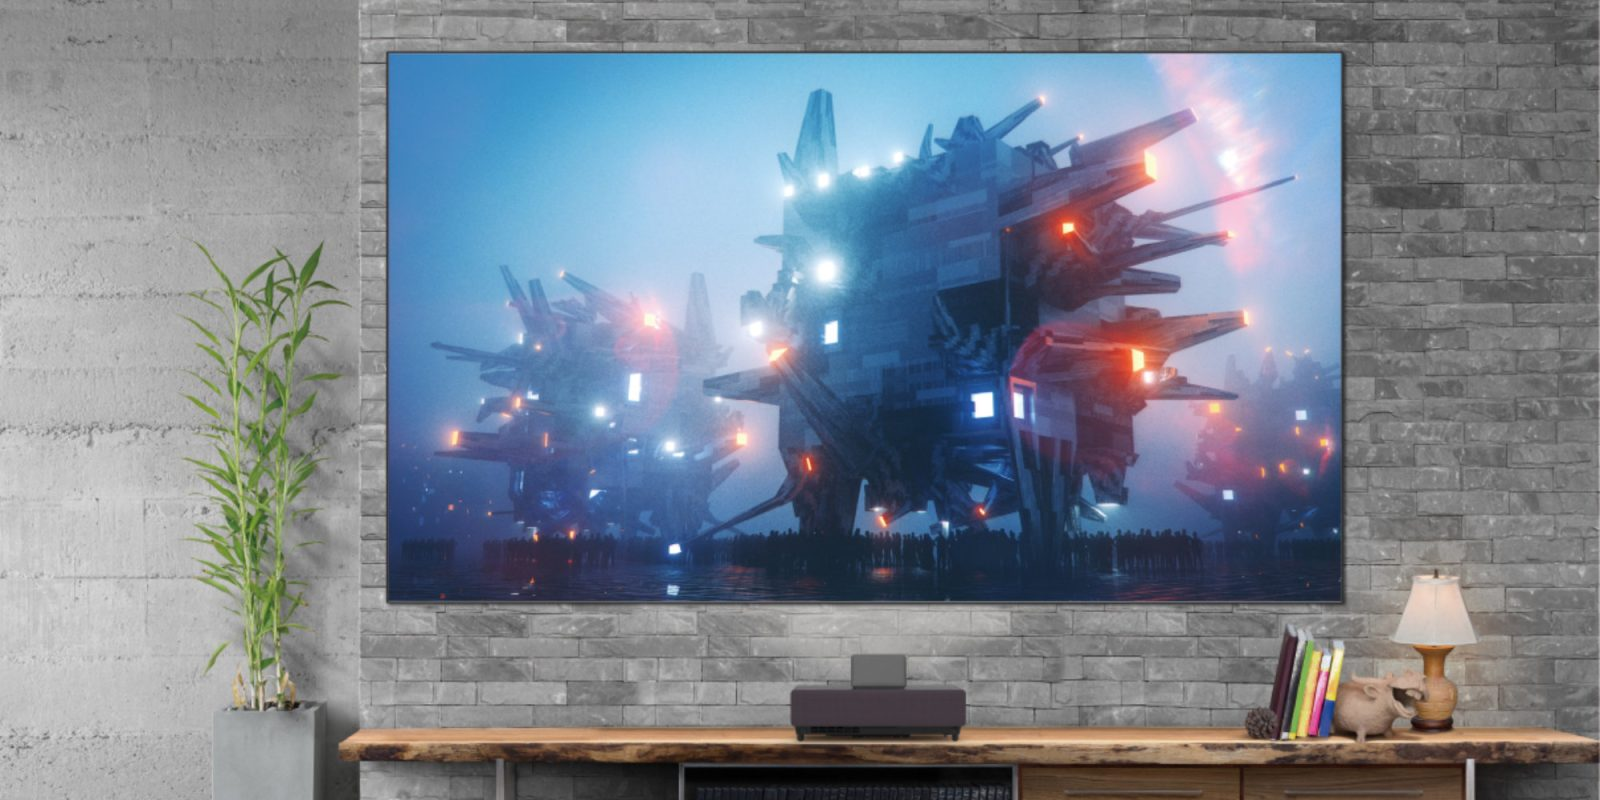 Epson's new 120-inch laser TV works in 'virtually any lighting environment'